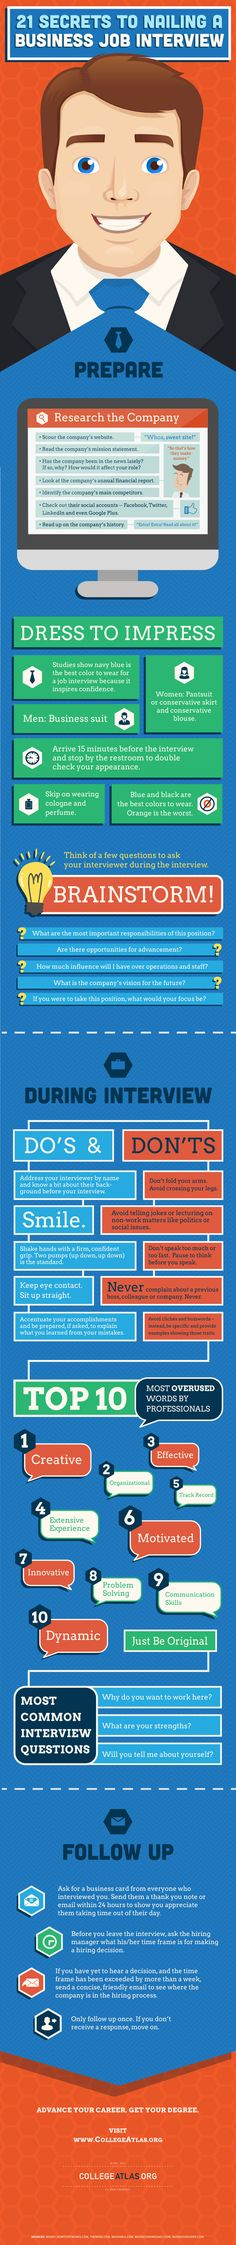 21 Secrets to Nailing a Business Job Interview #Interview #Job #Career #infographic